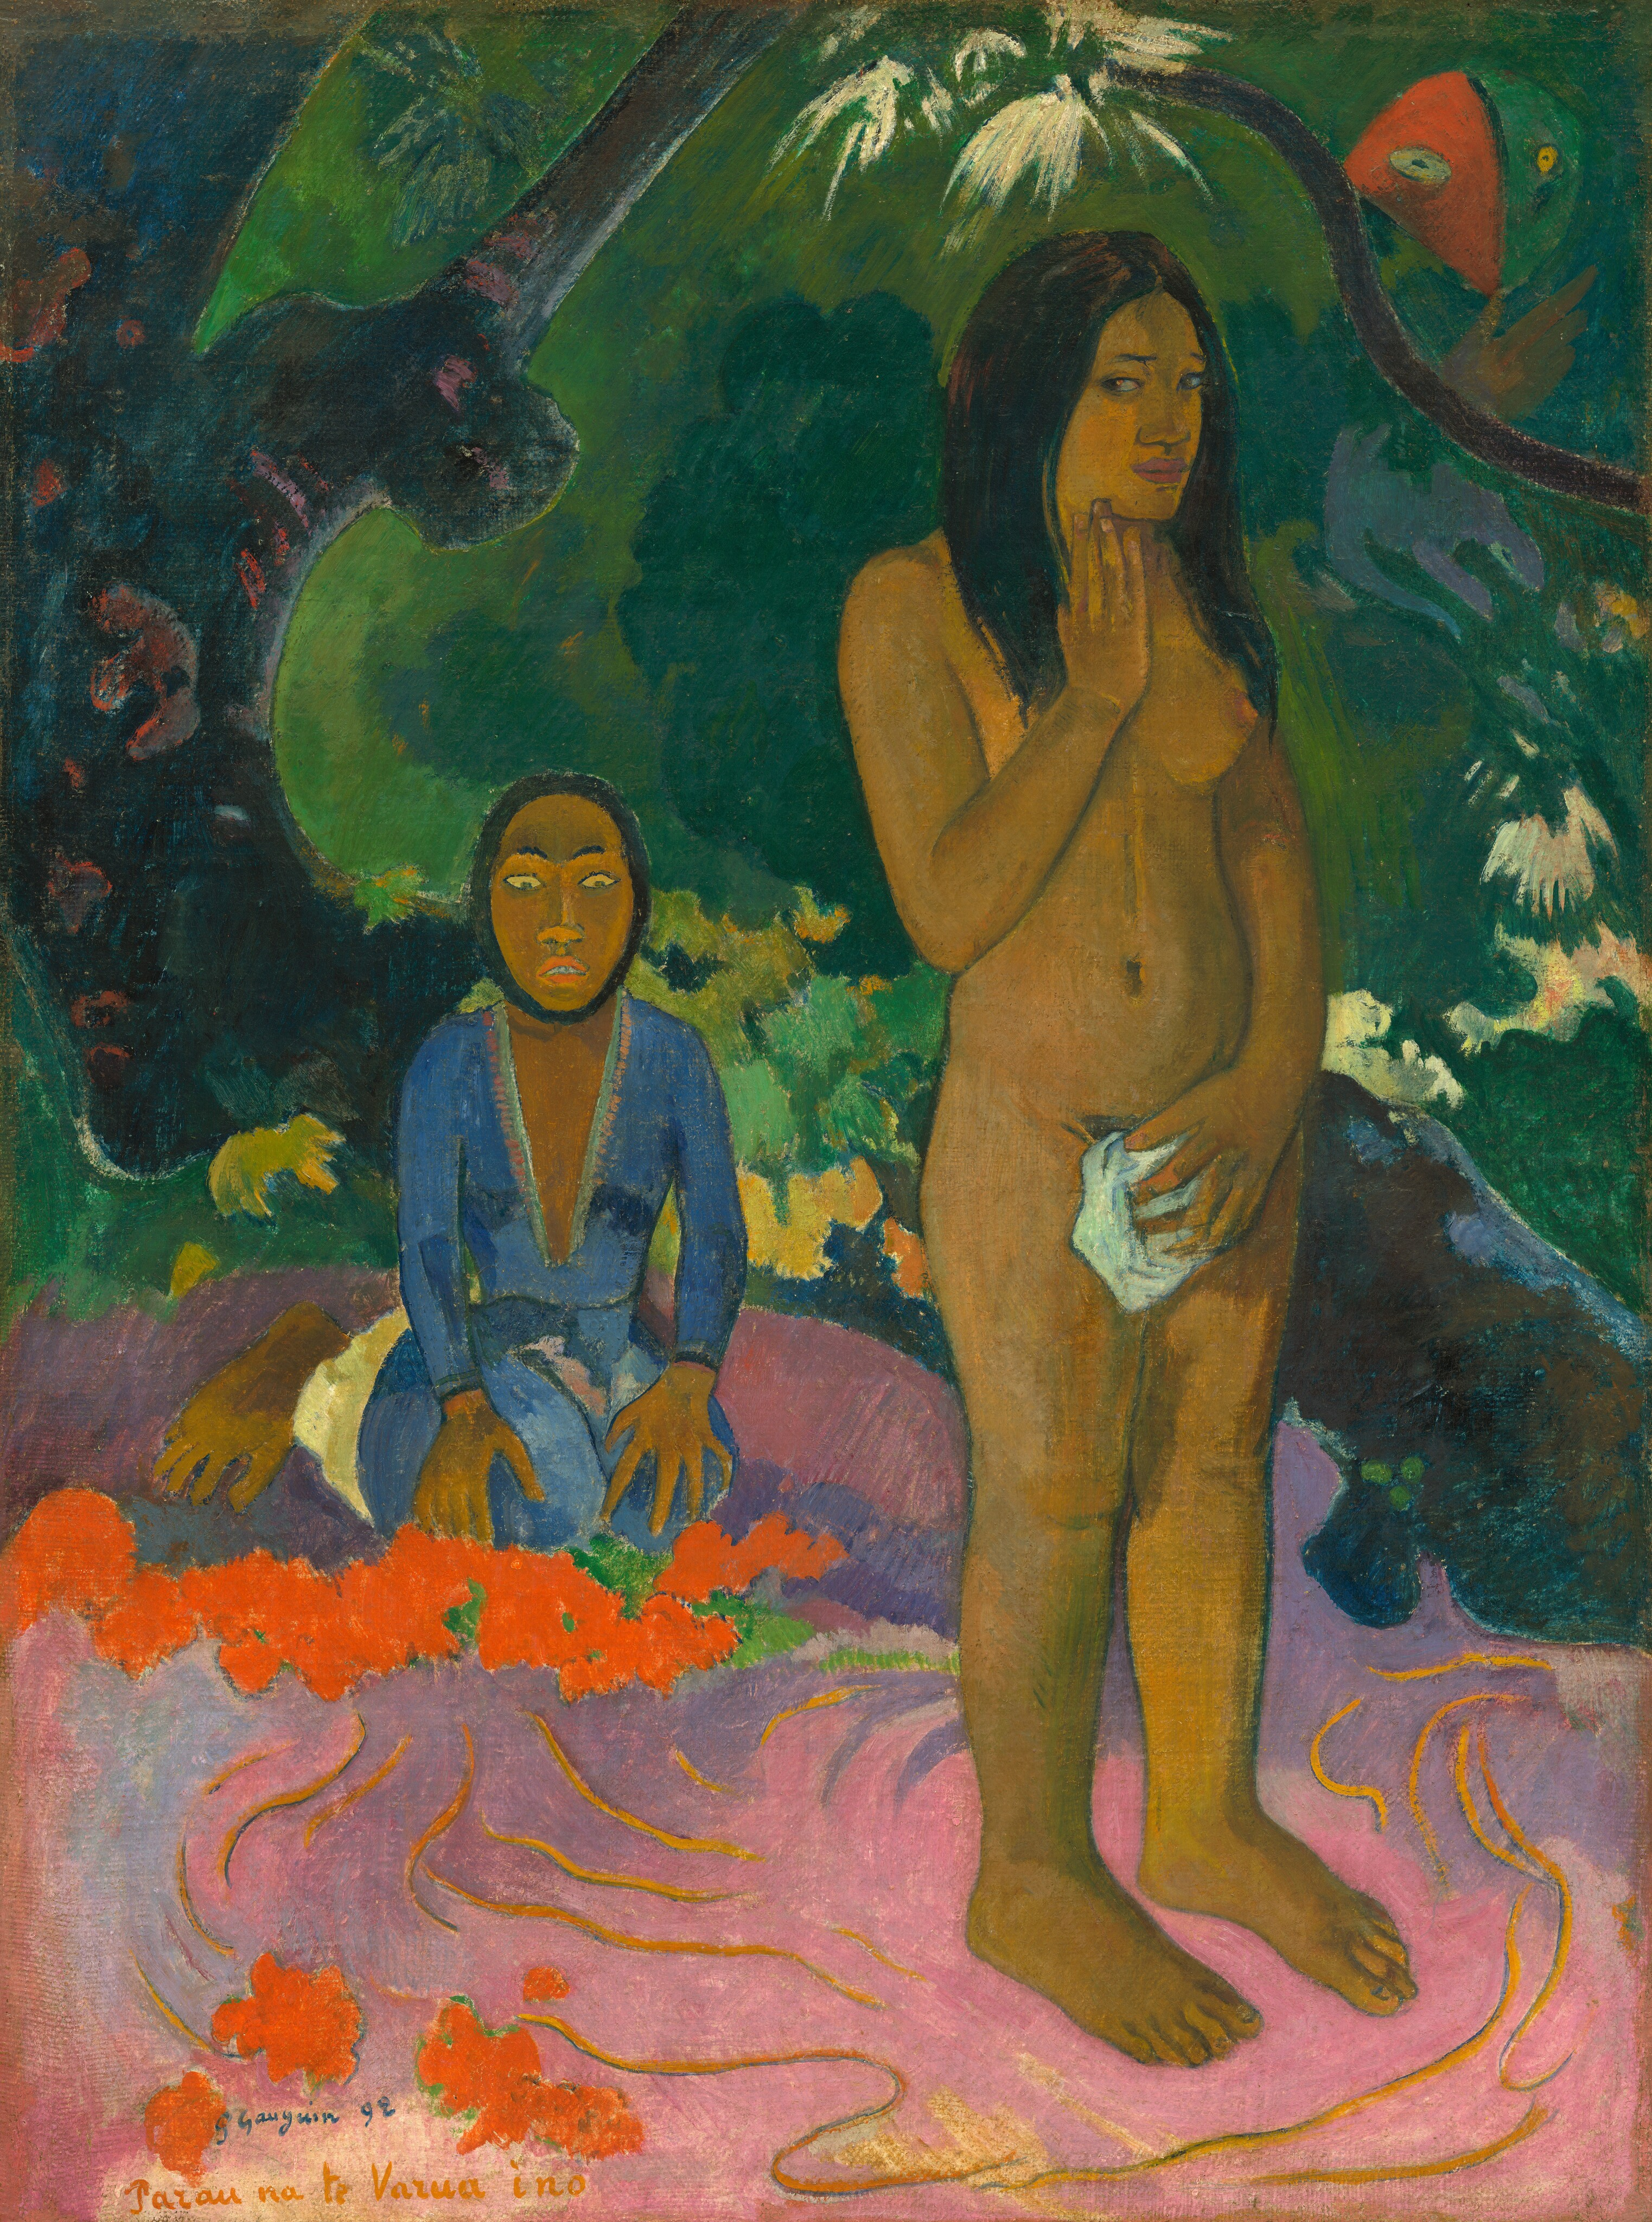 Lured to Tahiti in 1891 by reports of its unspoiled culture, Gauguin was disappointed by its civilized capital and moved to the countryside, where he found an approximation of the tropical paradise he had expected. The Tahiti of his depictions was derived from native folklore supplemented by material culled from books written by earlier European visitors and overlaid with allusions to western culture. The pose of the standing nude, for instance, is derived from a medieval statue of the biblical Eve and more distantly from the Venus Pudica of classical sculpture. The artist placed this rich combination of references to original sin, the loss of virginity, and occidental standards of beauty and art within the context of his Tahitian mythology and primitive, non–European aesthetics.  The meaning of the title Parau na te Varua ino is unclear. The phrase varua ino, evil spirit or devil, refers to the masked kneeling figure and parau means words, suggesting the interpretation